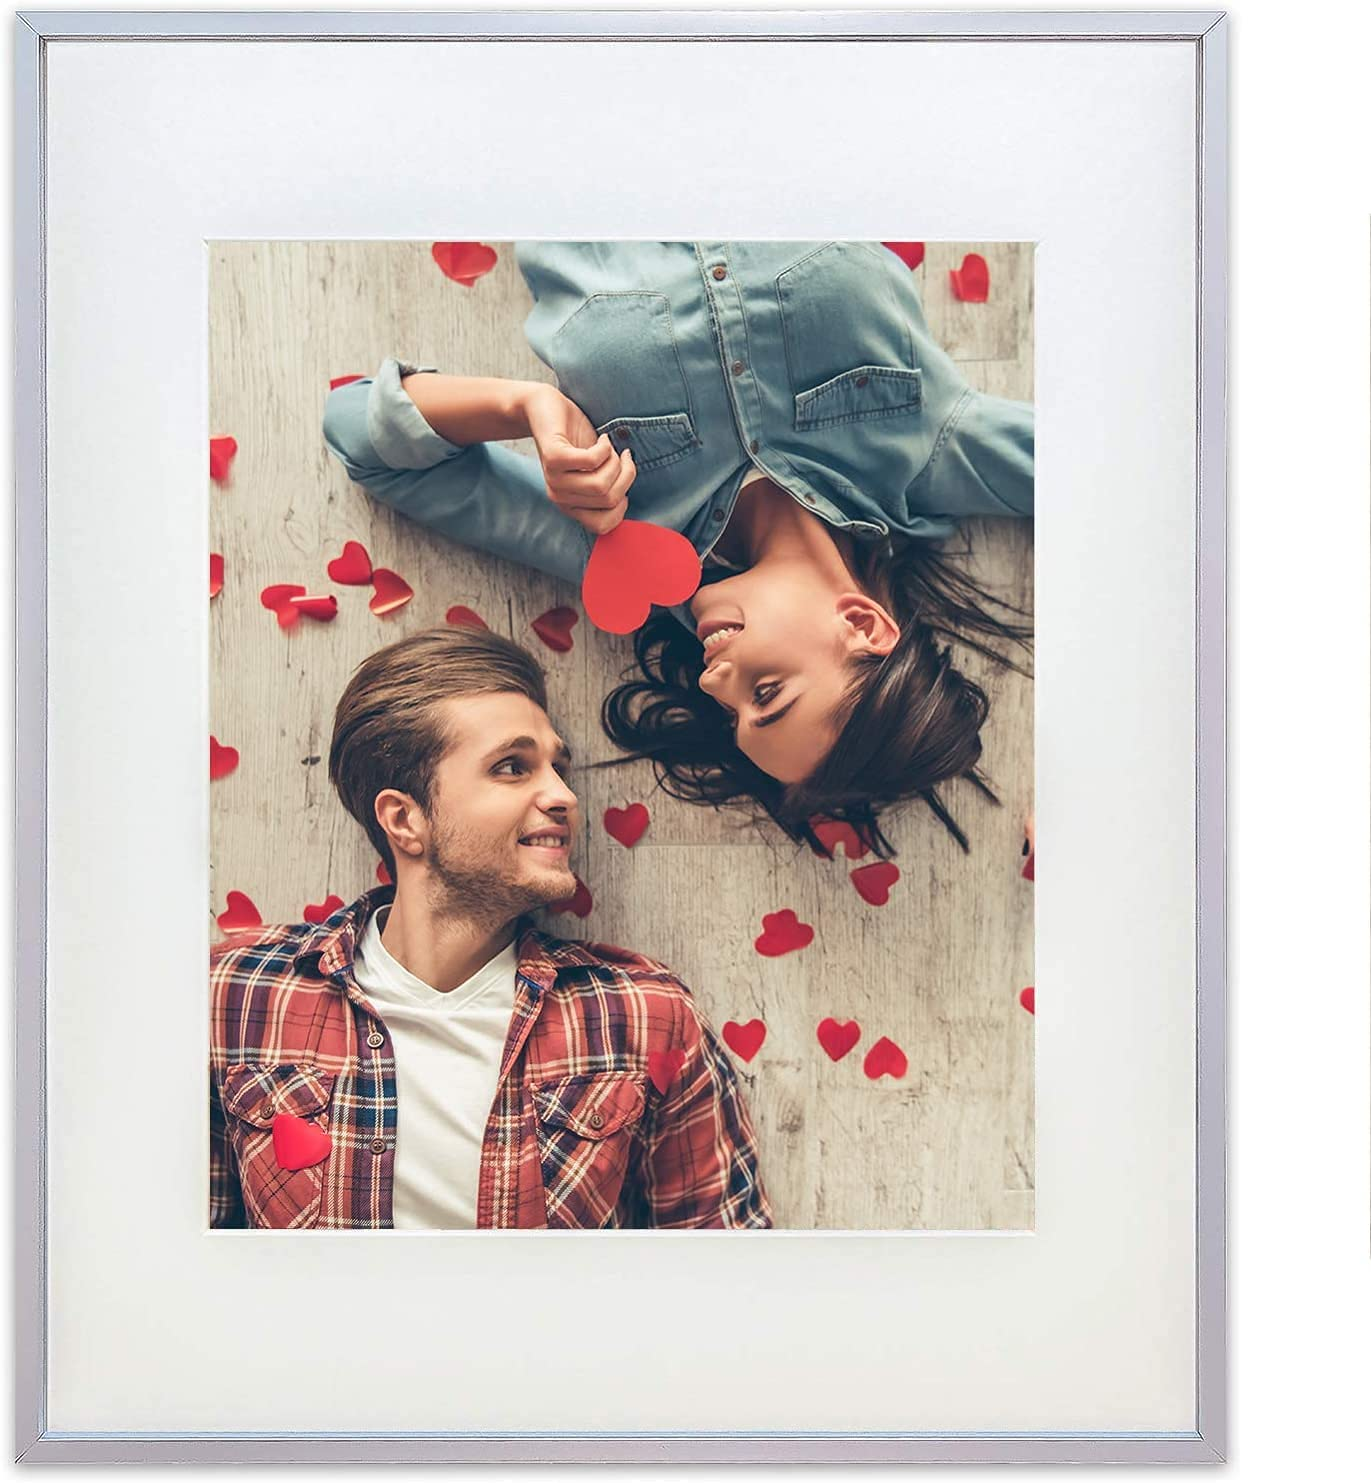 TheDisplayGuys Aluminum Metal 11x14 Picture Frame w. Tempered Glass matted to 8x10 (Silver) for Horizontal & Vertical Wall Hanging